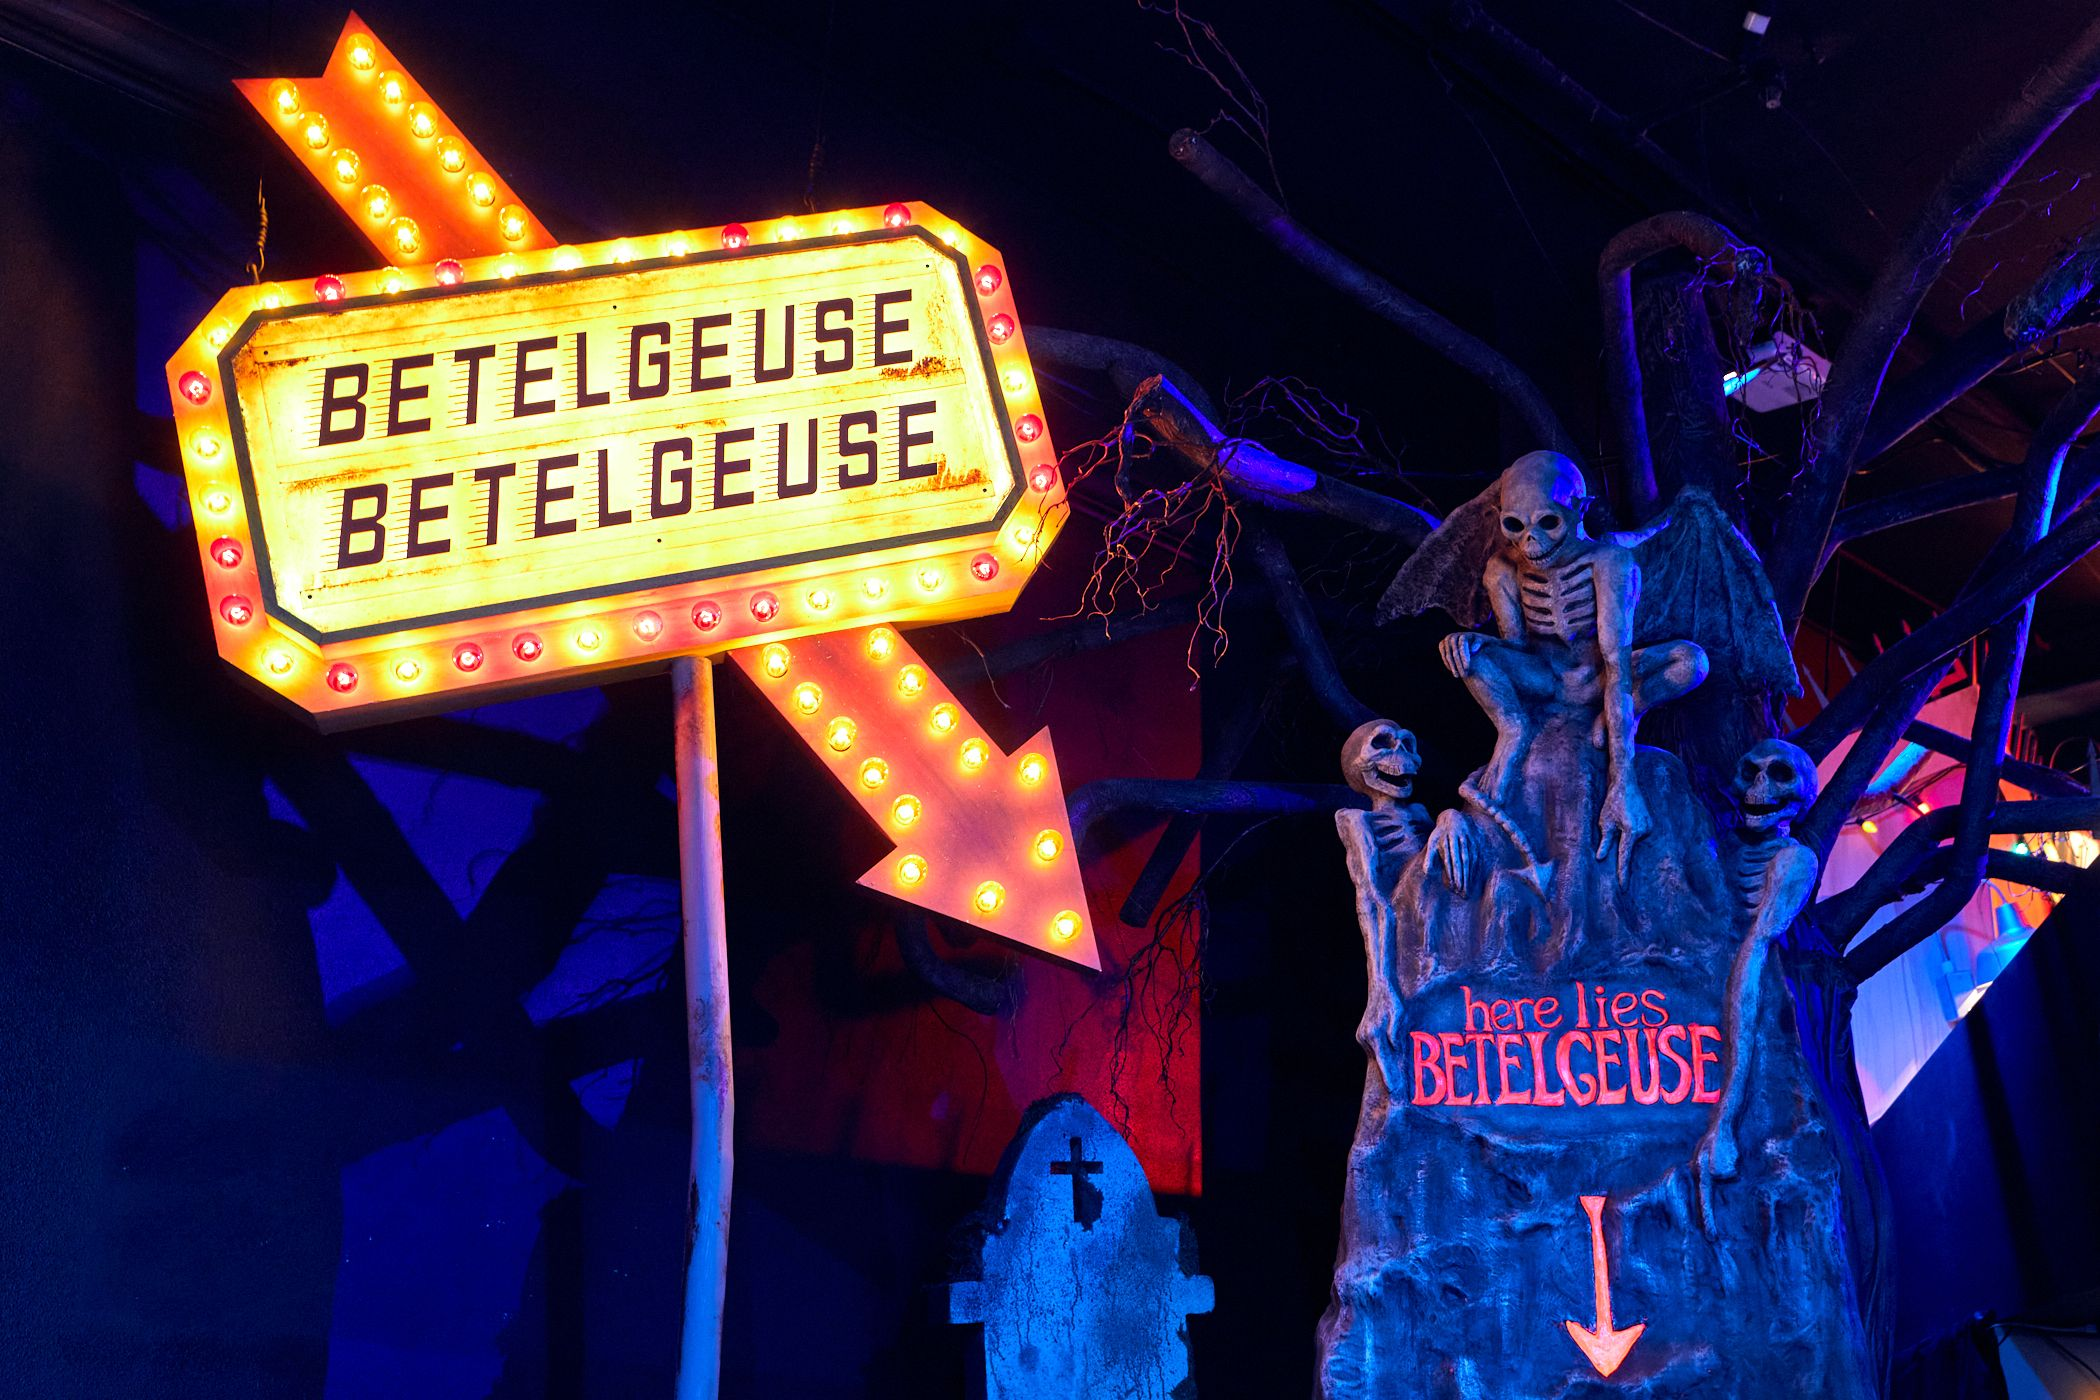 [News] Halloween Horror Nights Tribute Store Announces BEETLEJUICE